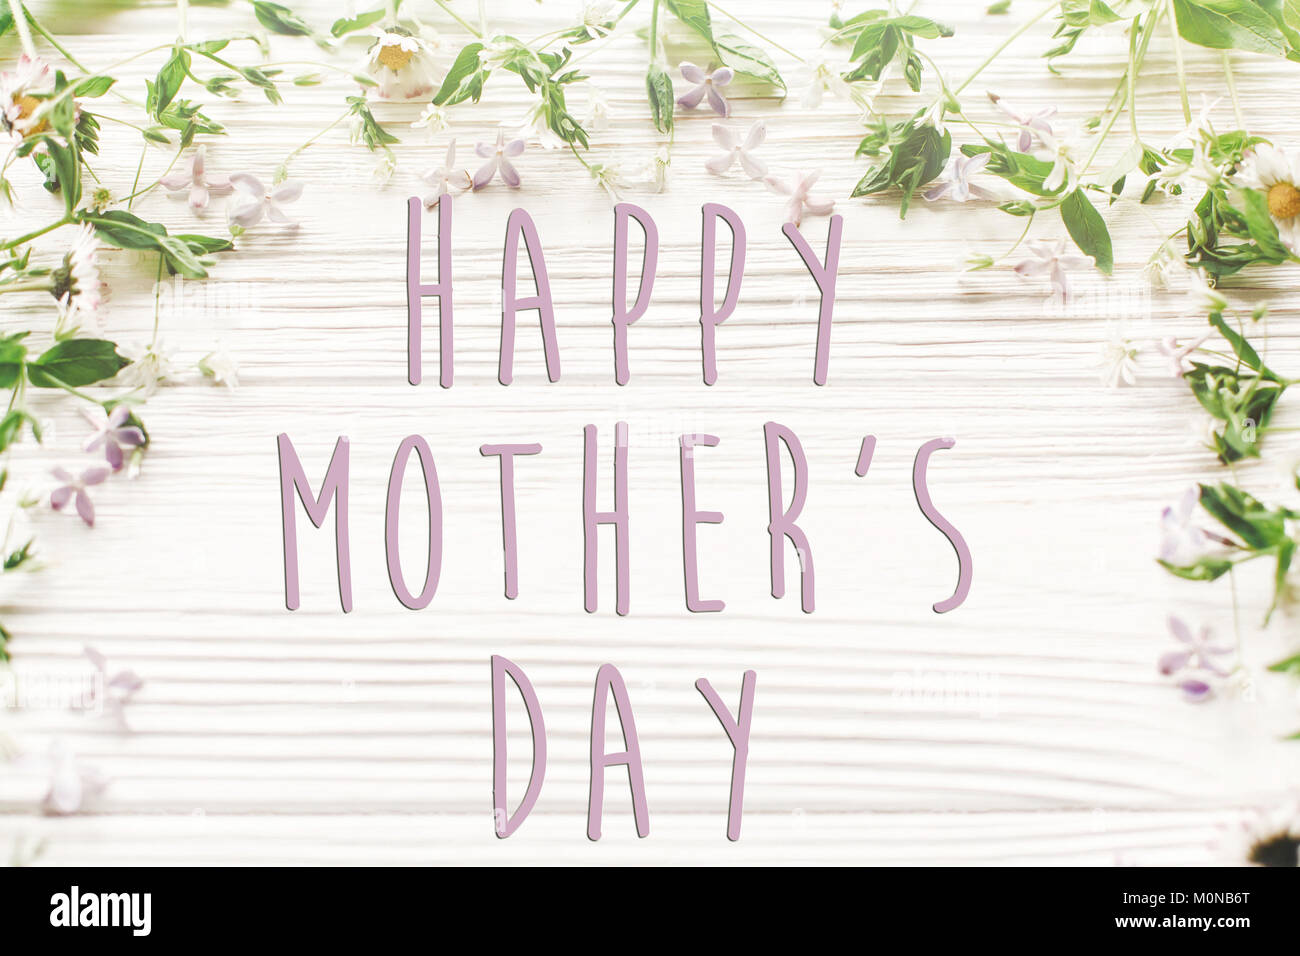 Happy mothers day text sign simple greeting card spring flat happy mothers day text sign simple greeting card spring flat lay fresh daisy lilac flowers and green herbs frame on white wooden rustic background kristyandbryce Choice Image